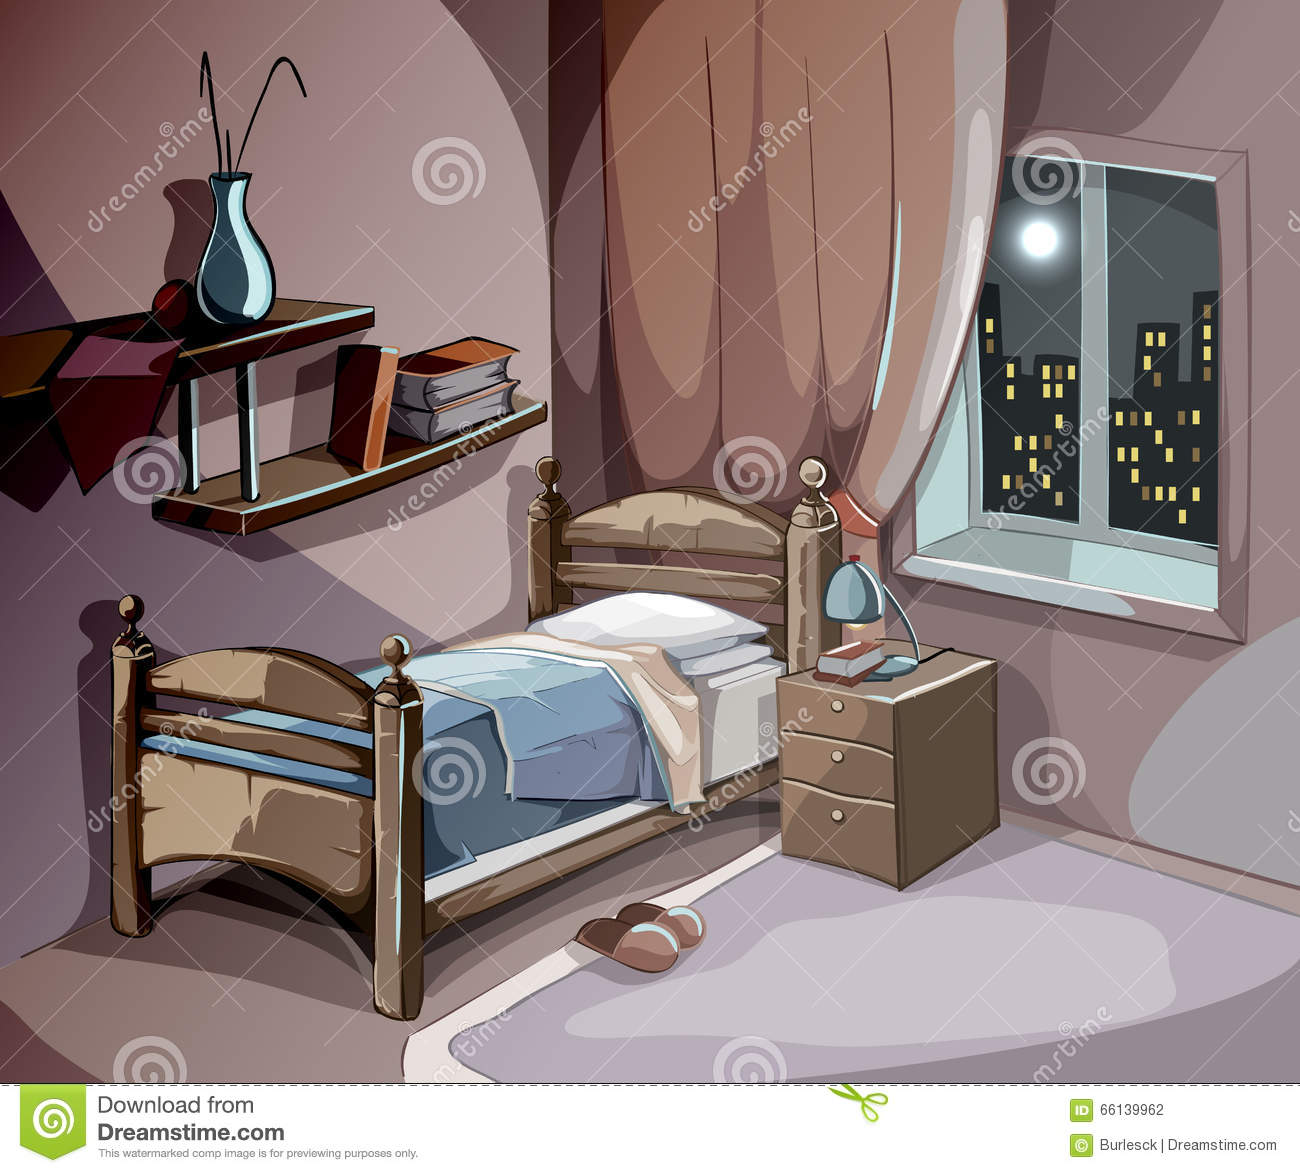 Bedroom interior at night in cartoon style vector for Sleeping room furniture